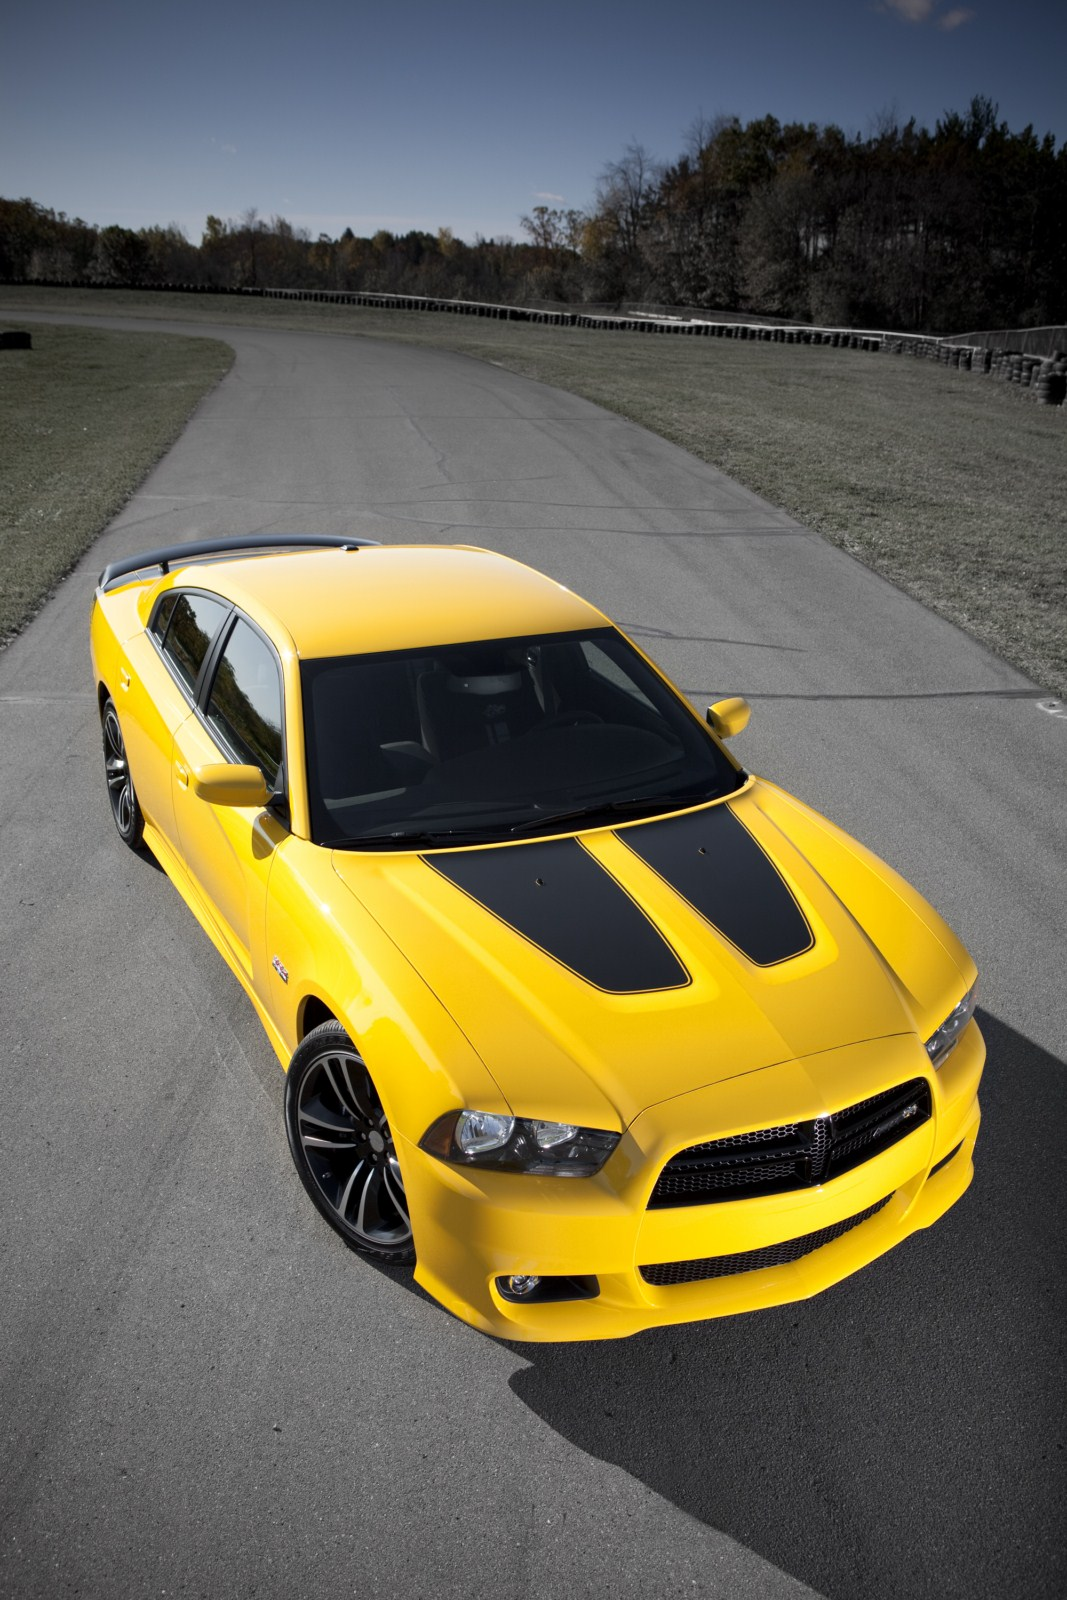 dodge challenger srt yellow jacket charger srt8 super bee los angeles. Black Bedroom Furniture Sets. Home Design Ideas